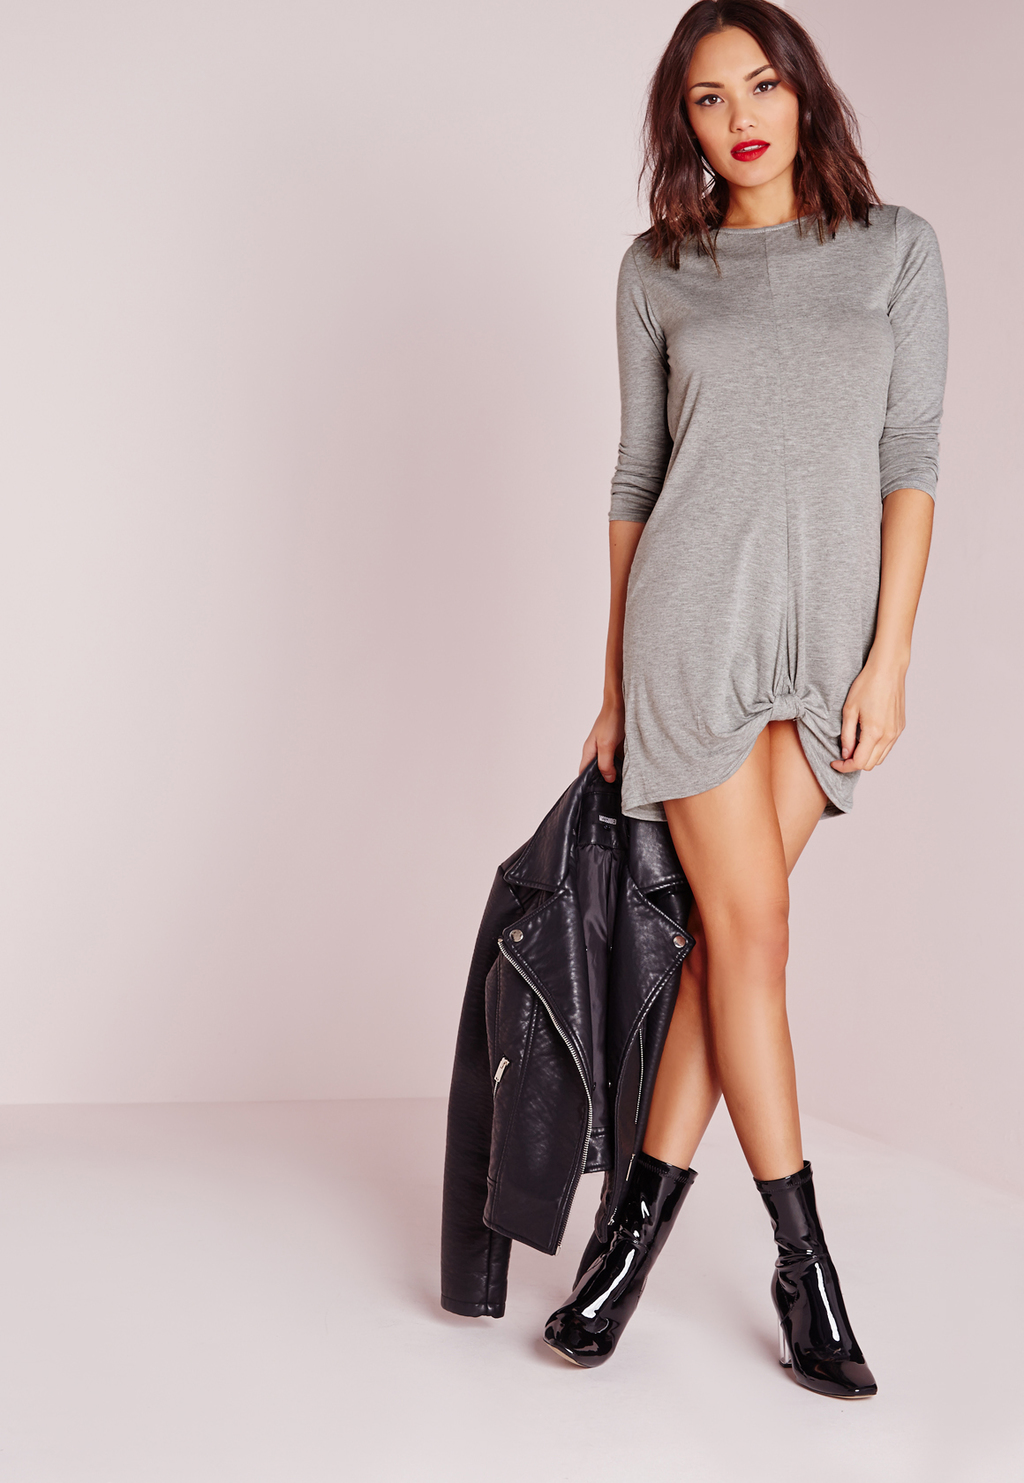 Knot Front Long Sleeve Dress Grey Marl, Grey - style: tunic; length: mini; pattern: plain; predominant colour: light grey; occasions: casual; fit: body skimming; fibres: polyester/polyamide - stretch; neckline: crew; back detail: longer hem at back than at front; sleeve length: 3/4 length; sleeve style: standard; pattern type: fabric; texture group: jersey - stretchy/drapey; season: s/s 2016; wardrobe: basic